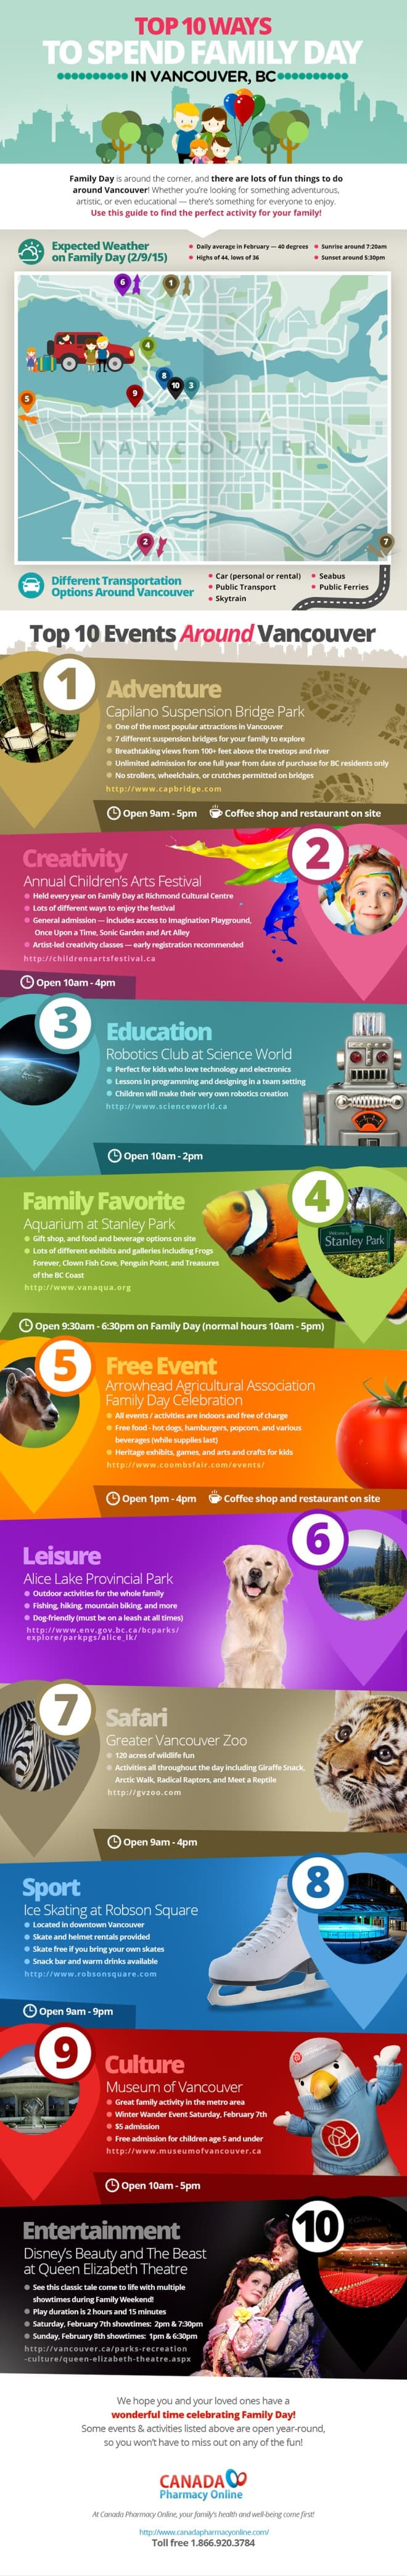 Infographic: Top 10 Ways to Spend Family Day in Vancouver BC